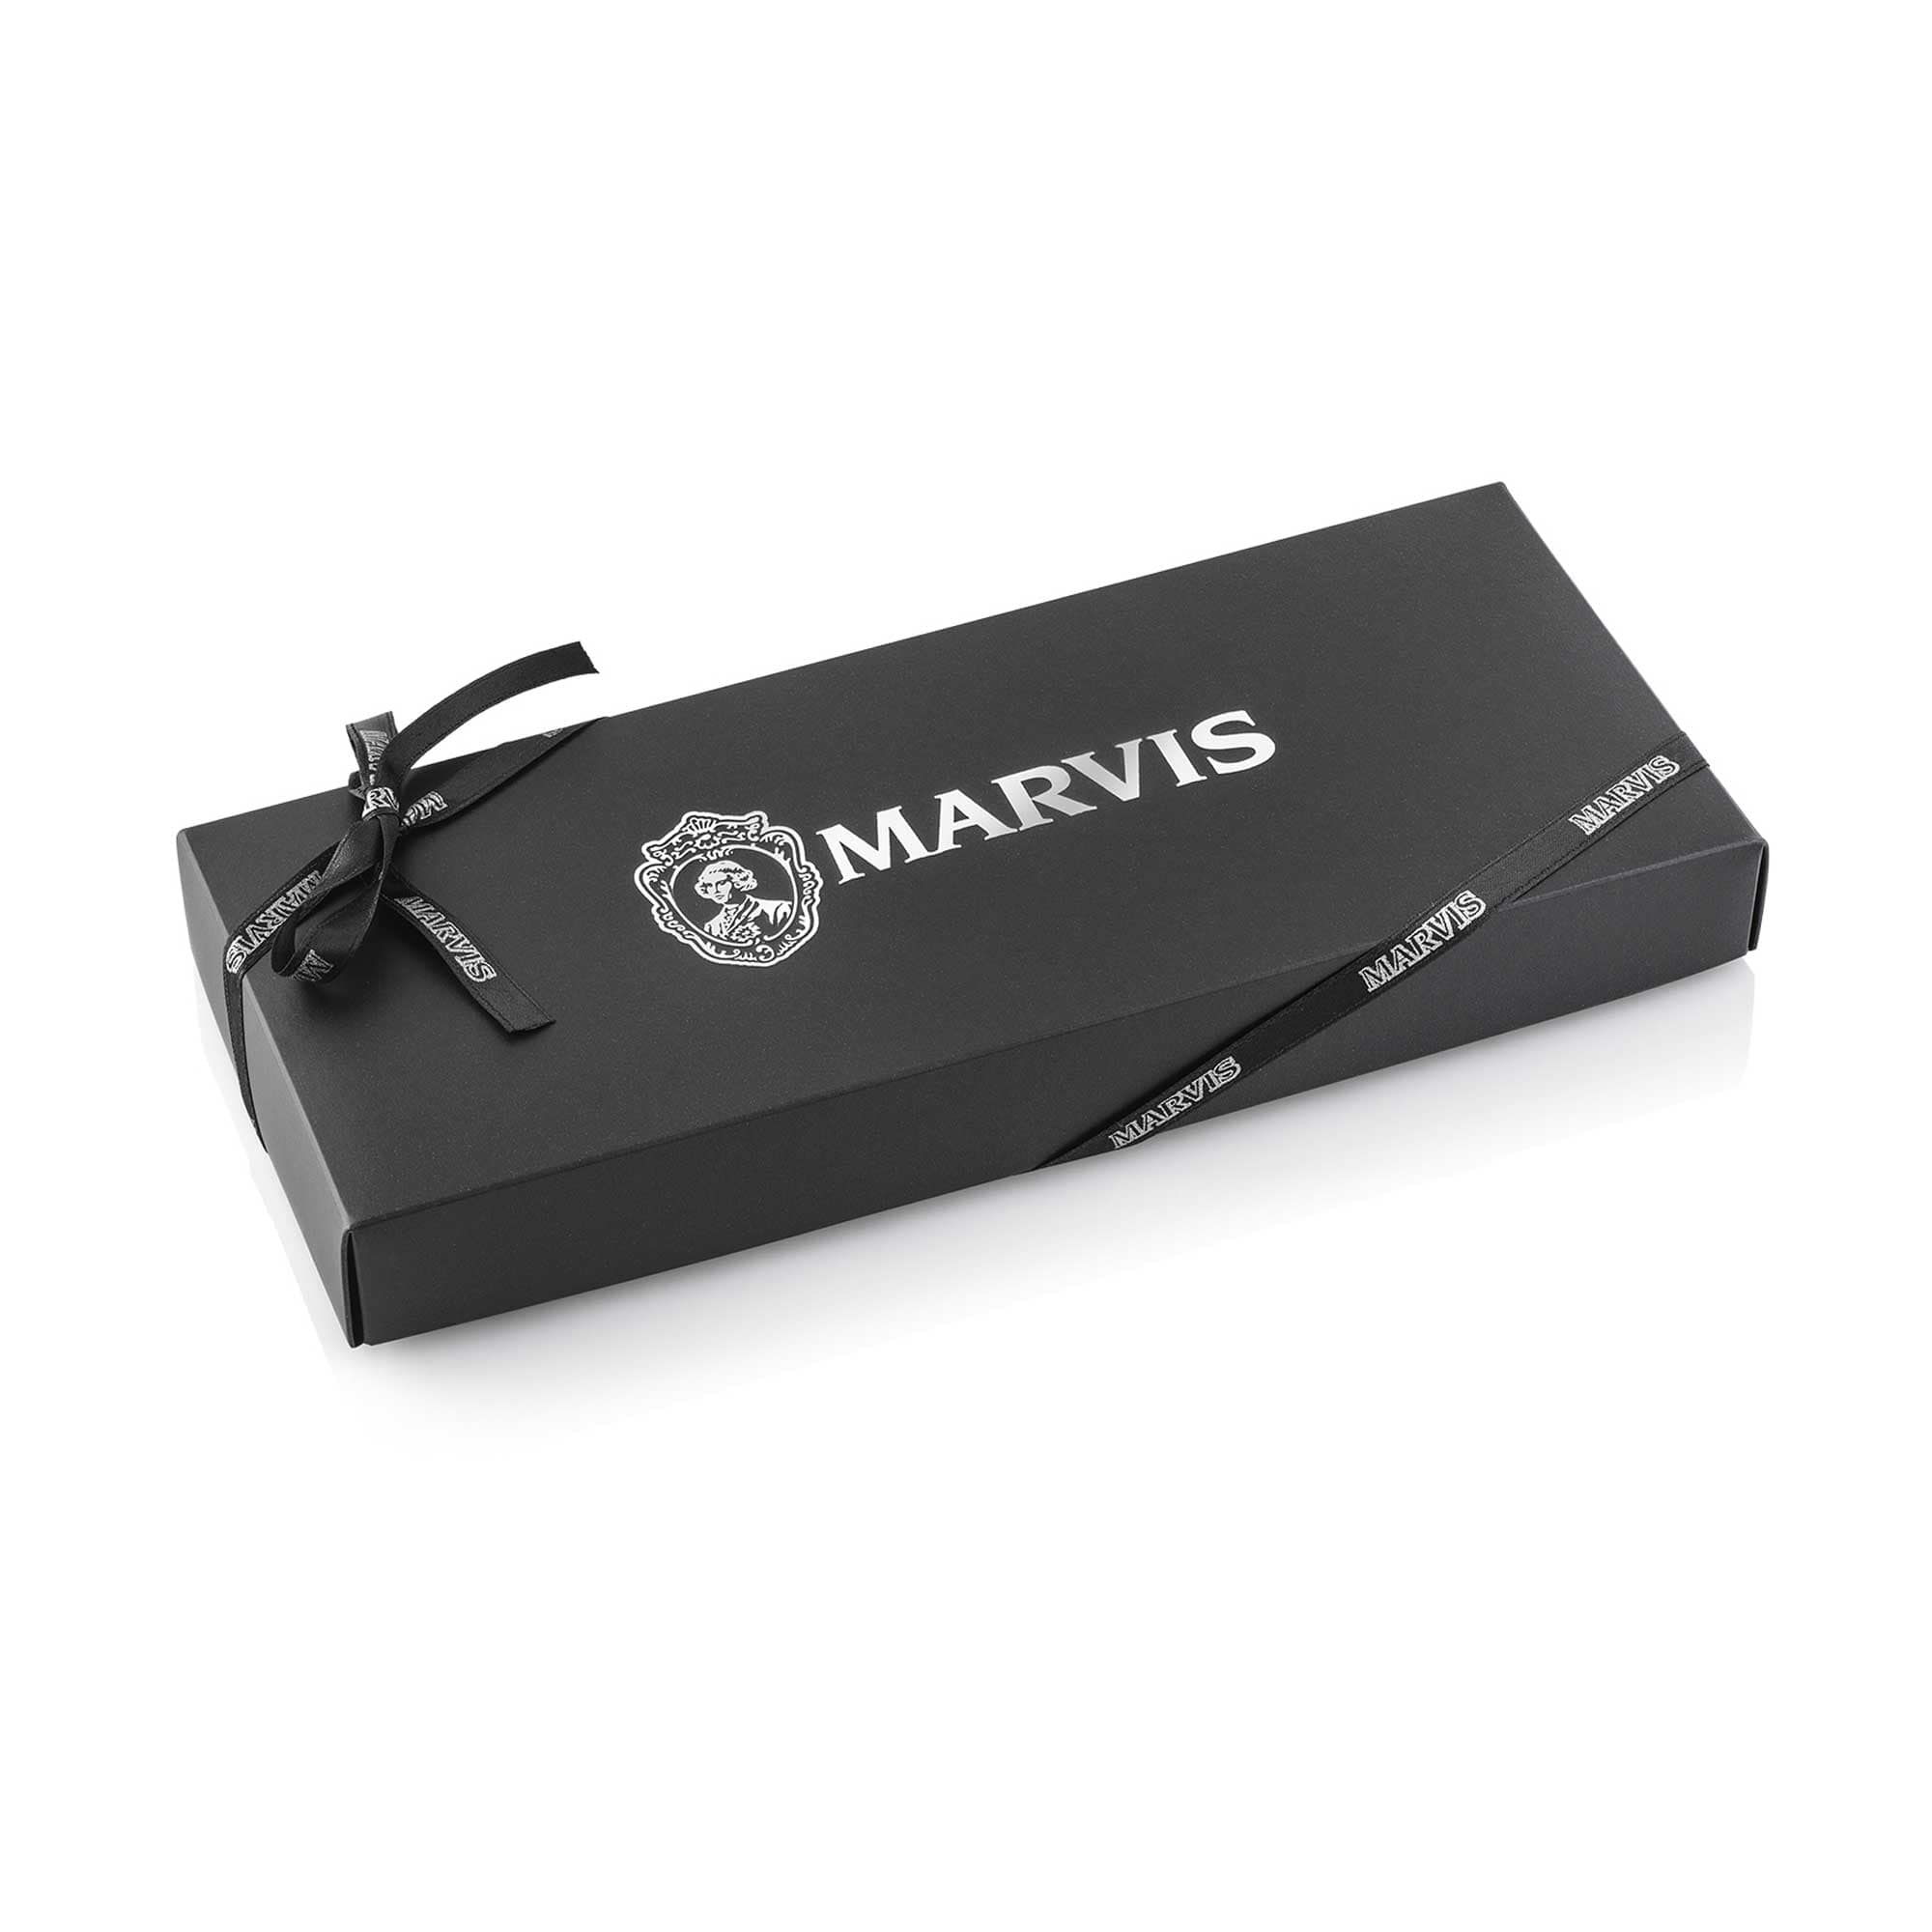 Marvis Mint Badezimmer 7 Flavours Box